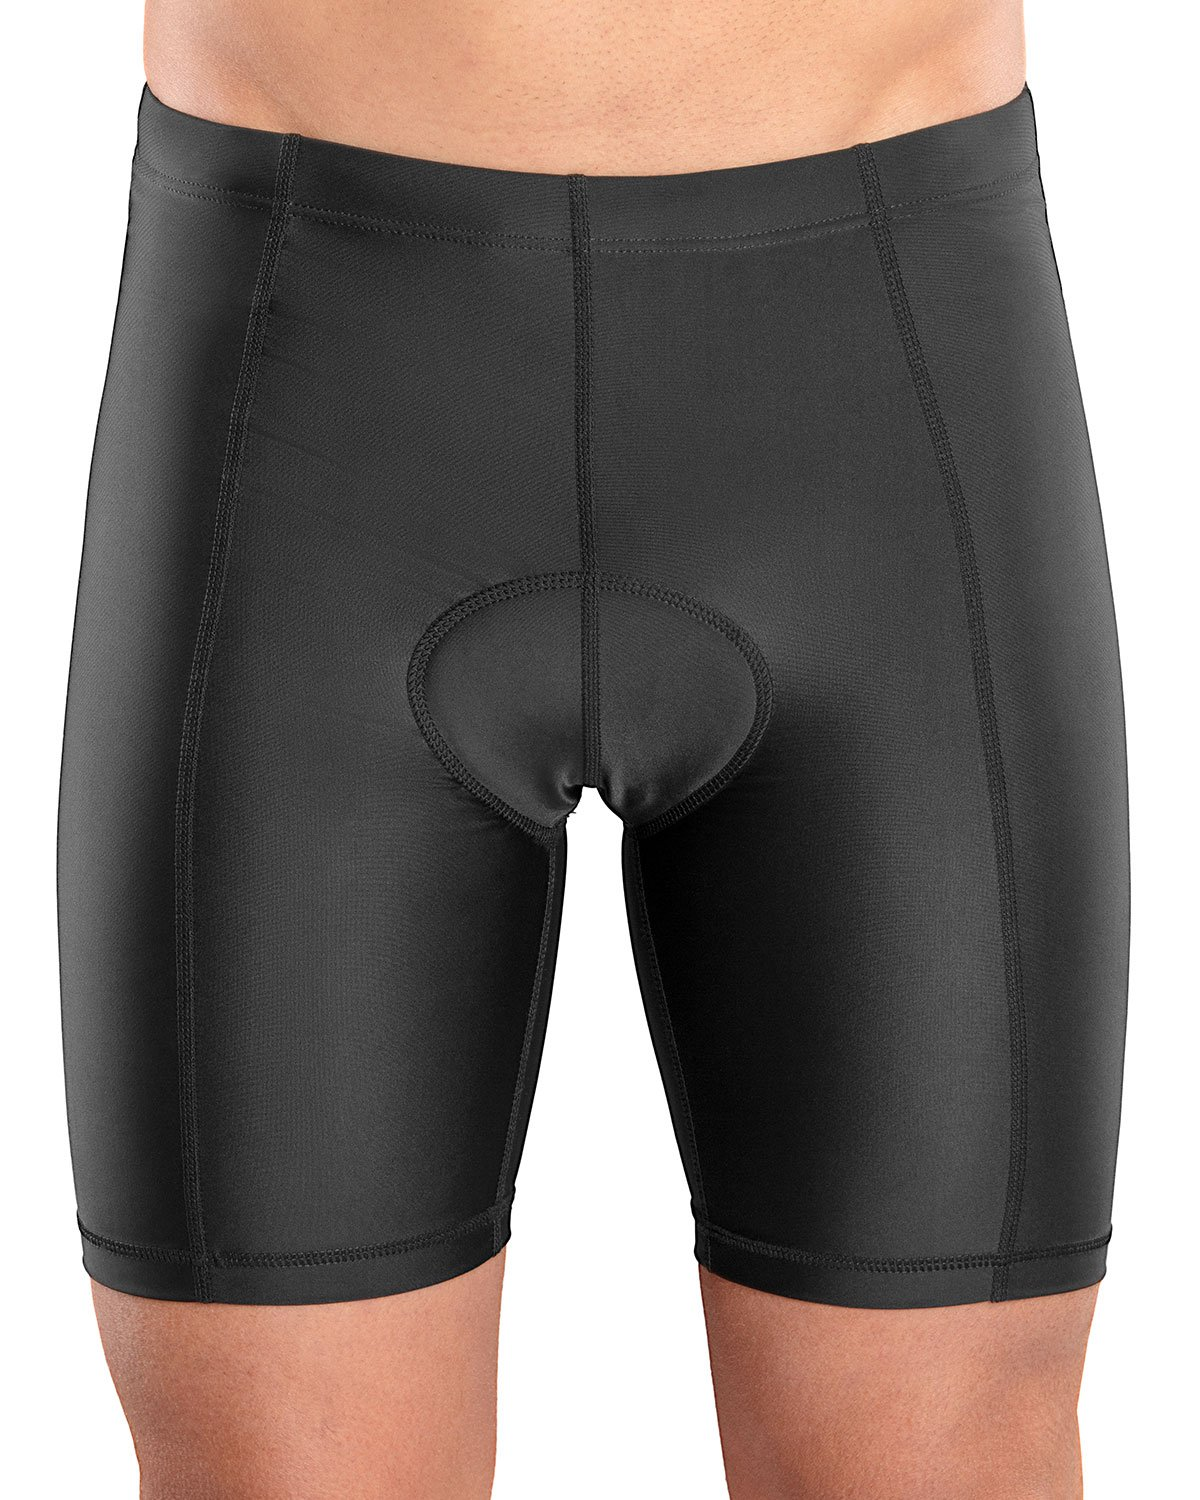 SLS3 Triathlon Shorts Men + Race Belt | 2 Pockets Tri Shorts Men | Trisuit Triathlon Men M by SLS3 (Image #6)